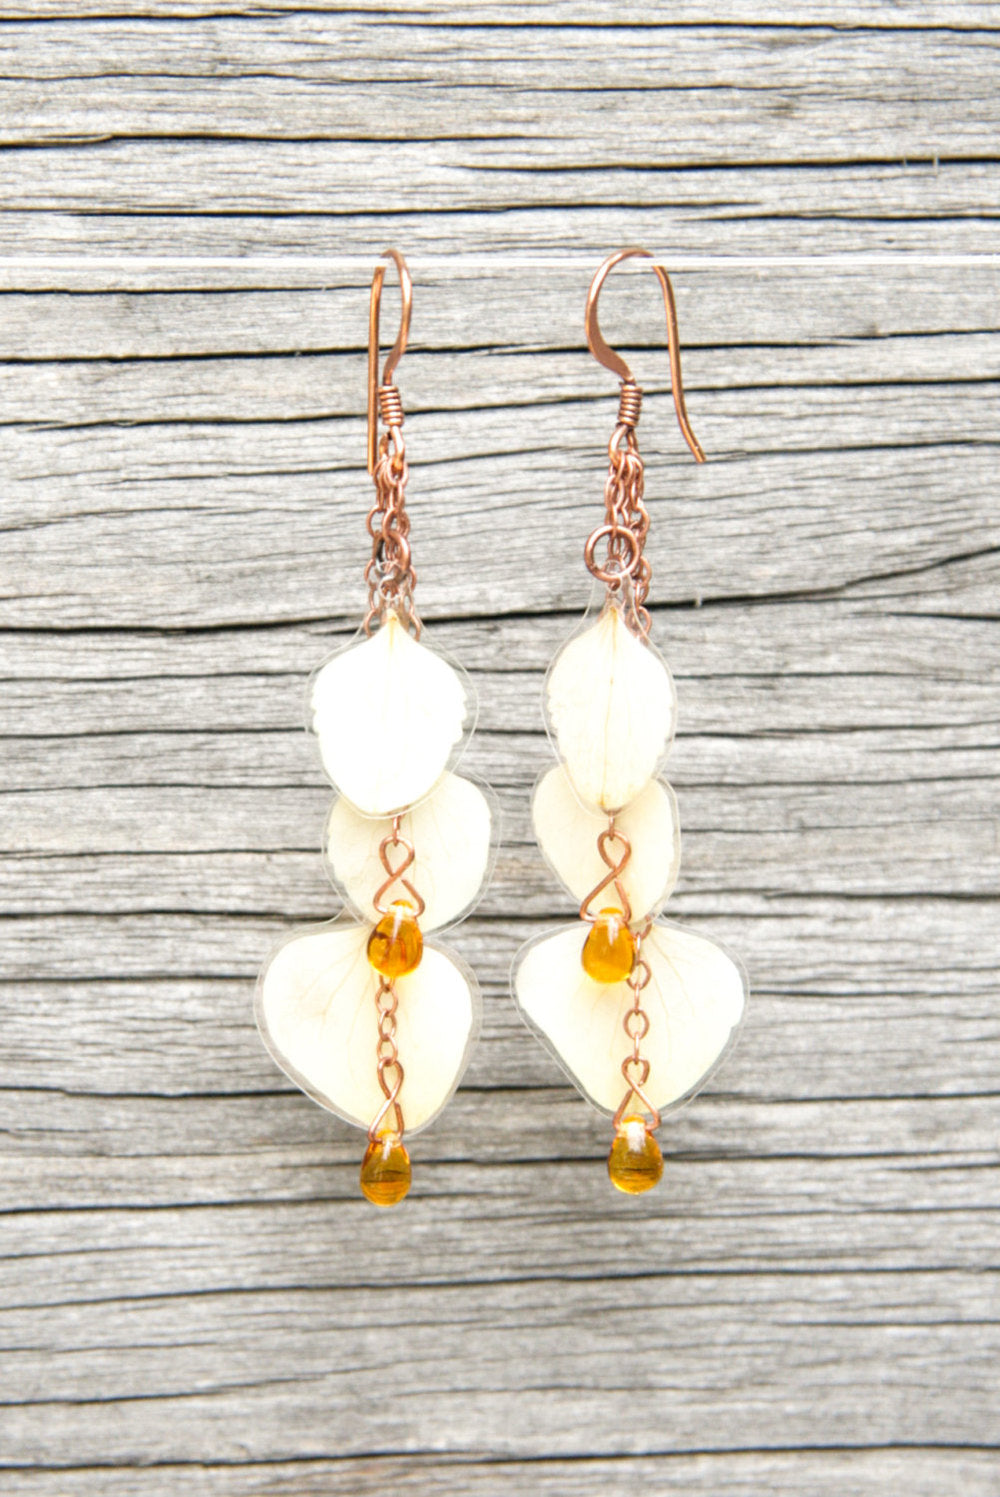 White Hydrangea Pressed Flower Earrings with Amber Czech Glass Beads